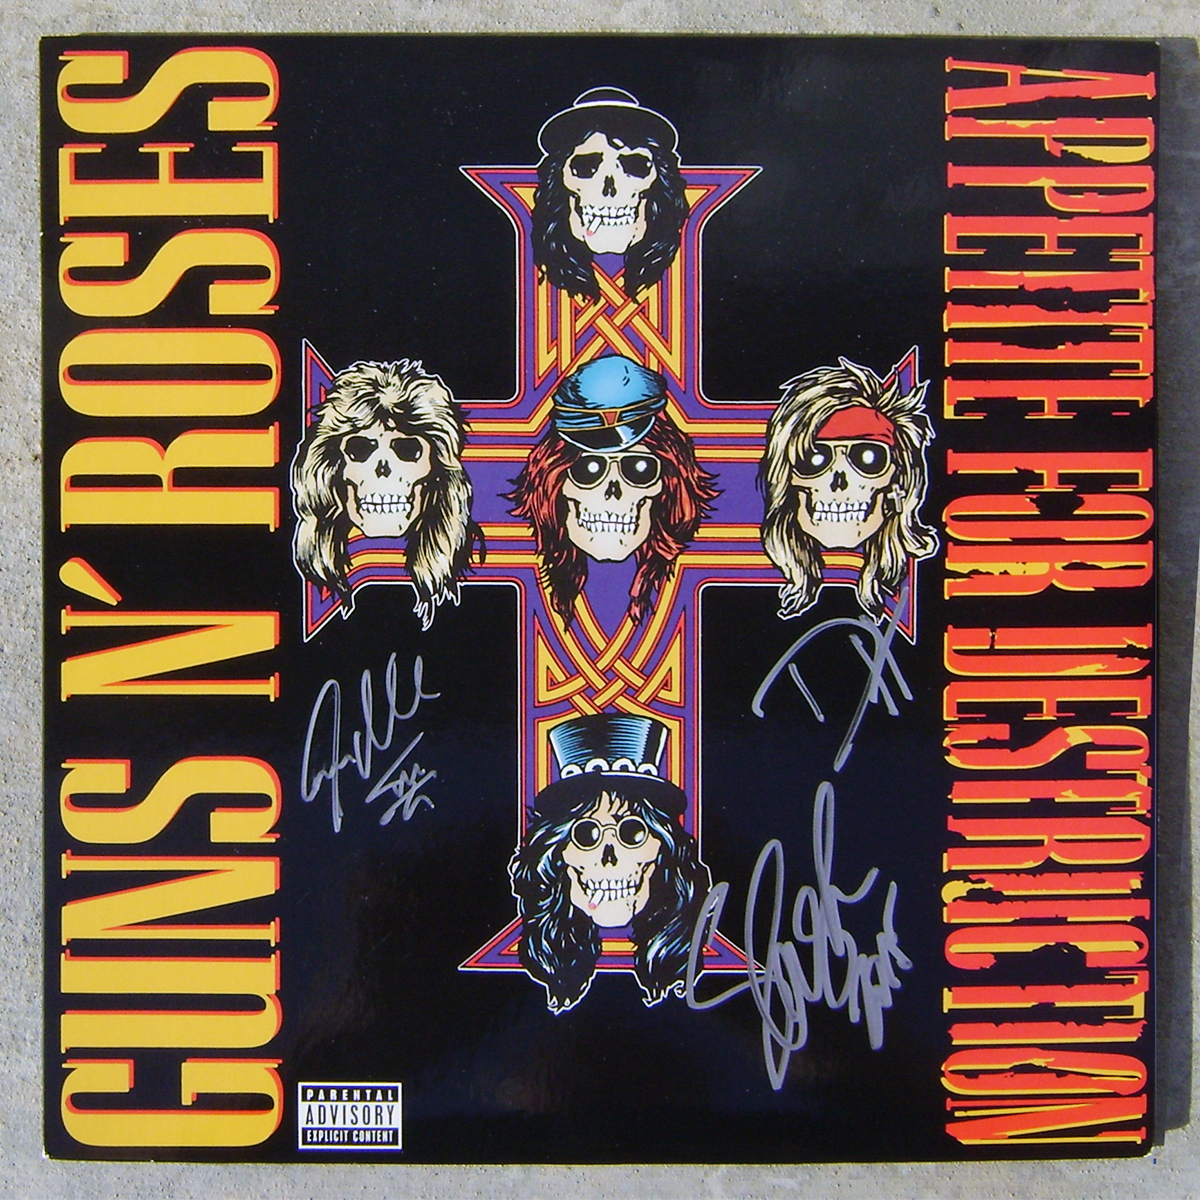 LP - Guns n' Roses - Appetite for Destruction